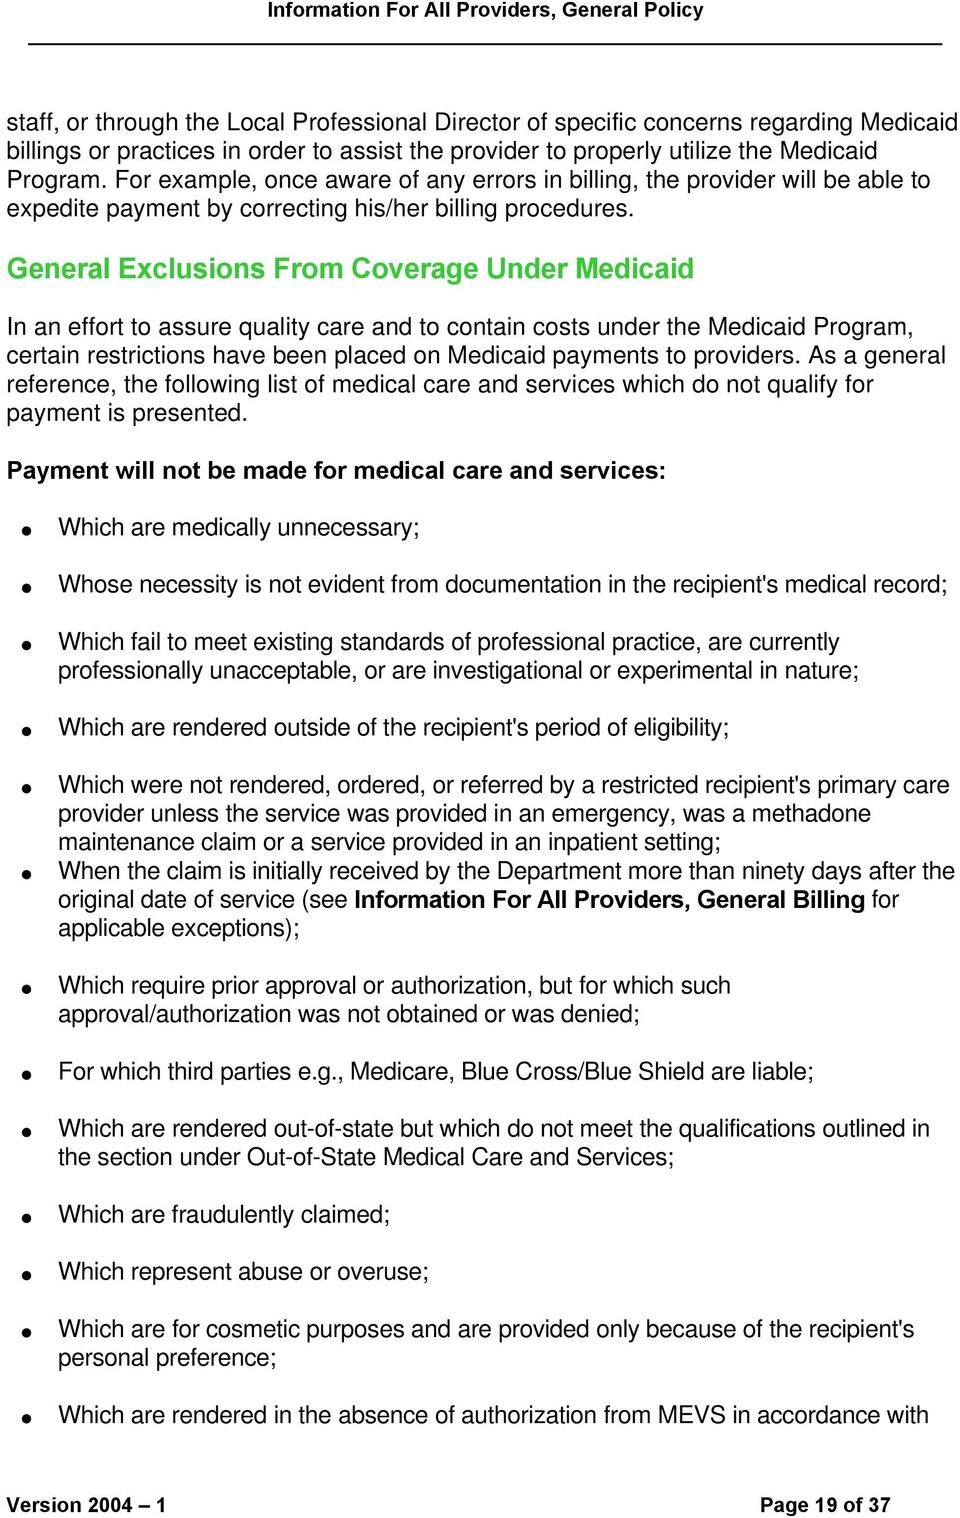 General Exclusions From Coverage Under Medicaid In an effort to assure quality care and to contain costs under the Medicaid Program, certain restrictions have been placed on Medicaid payments to